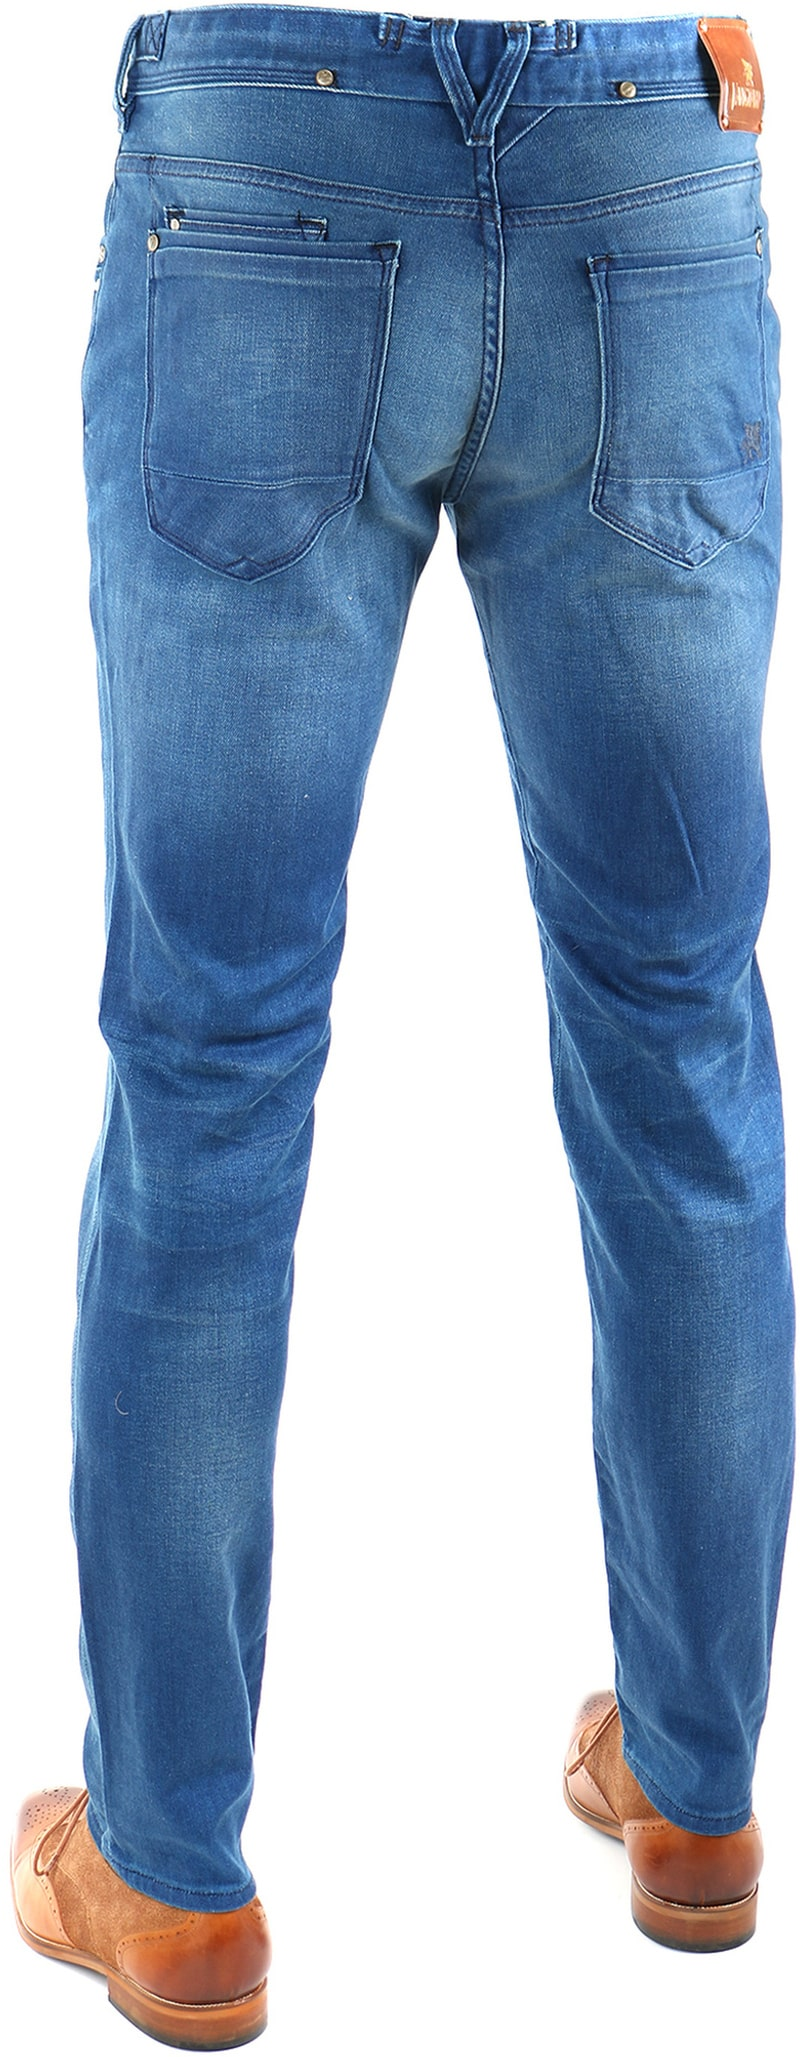 Detail Vanguard V8 Racer Jeans Blue